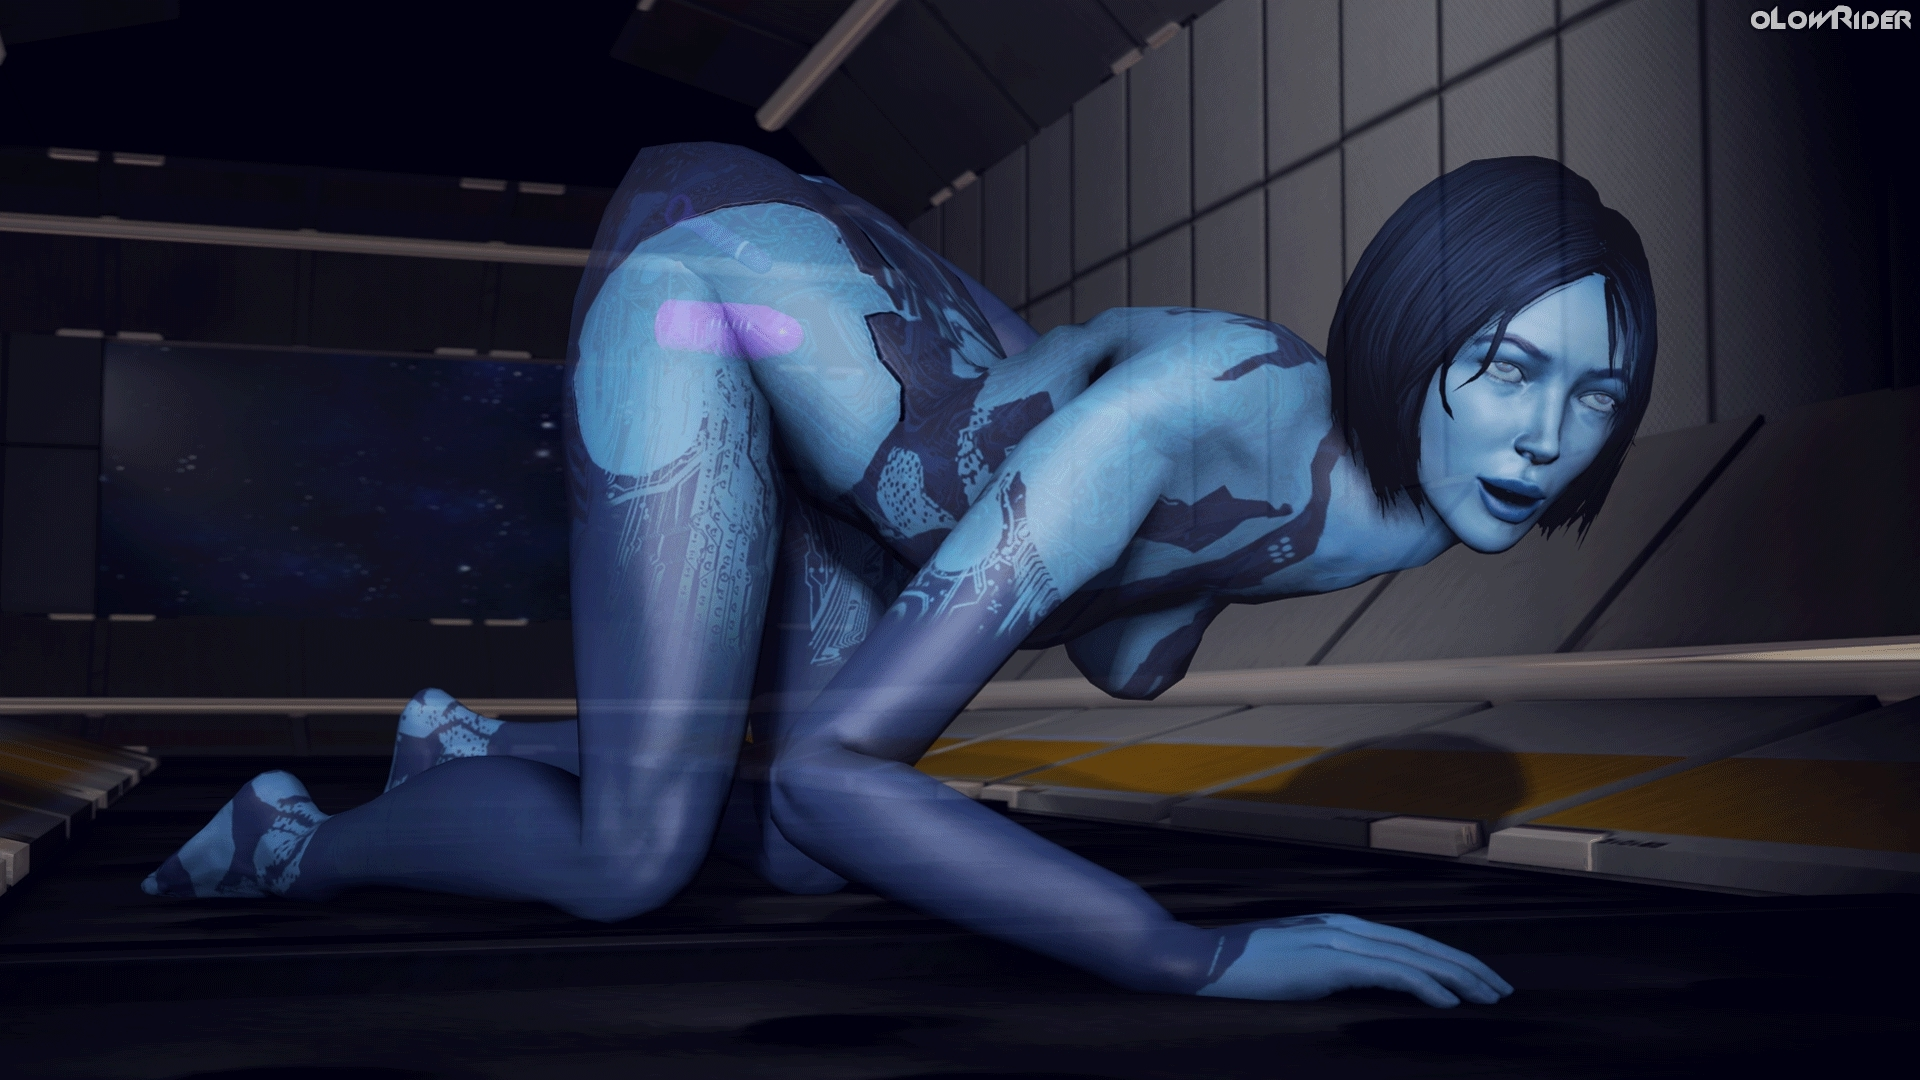 Sexy halo cortana having sex sexual movie